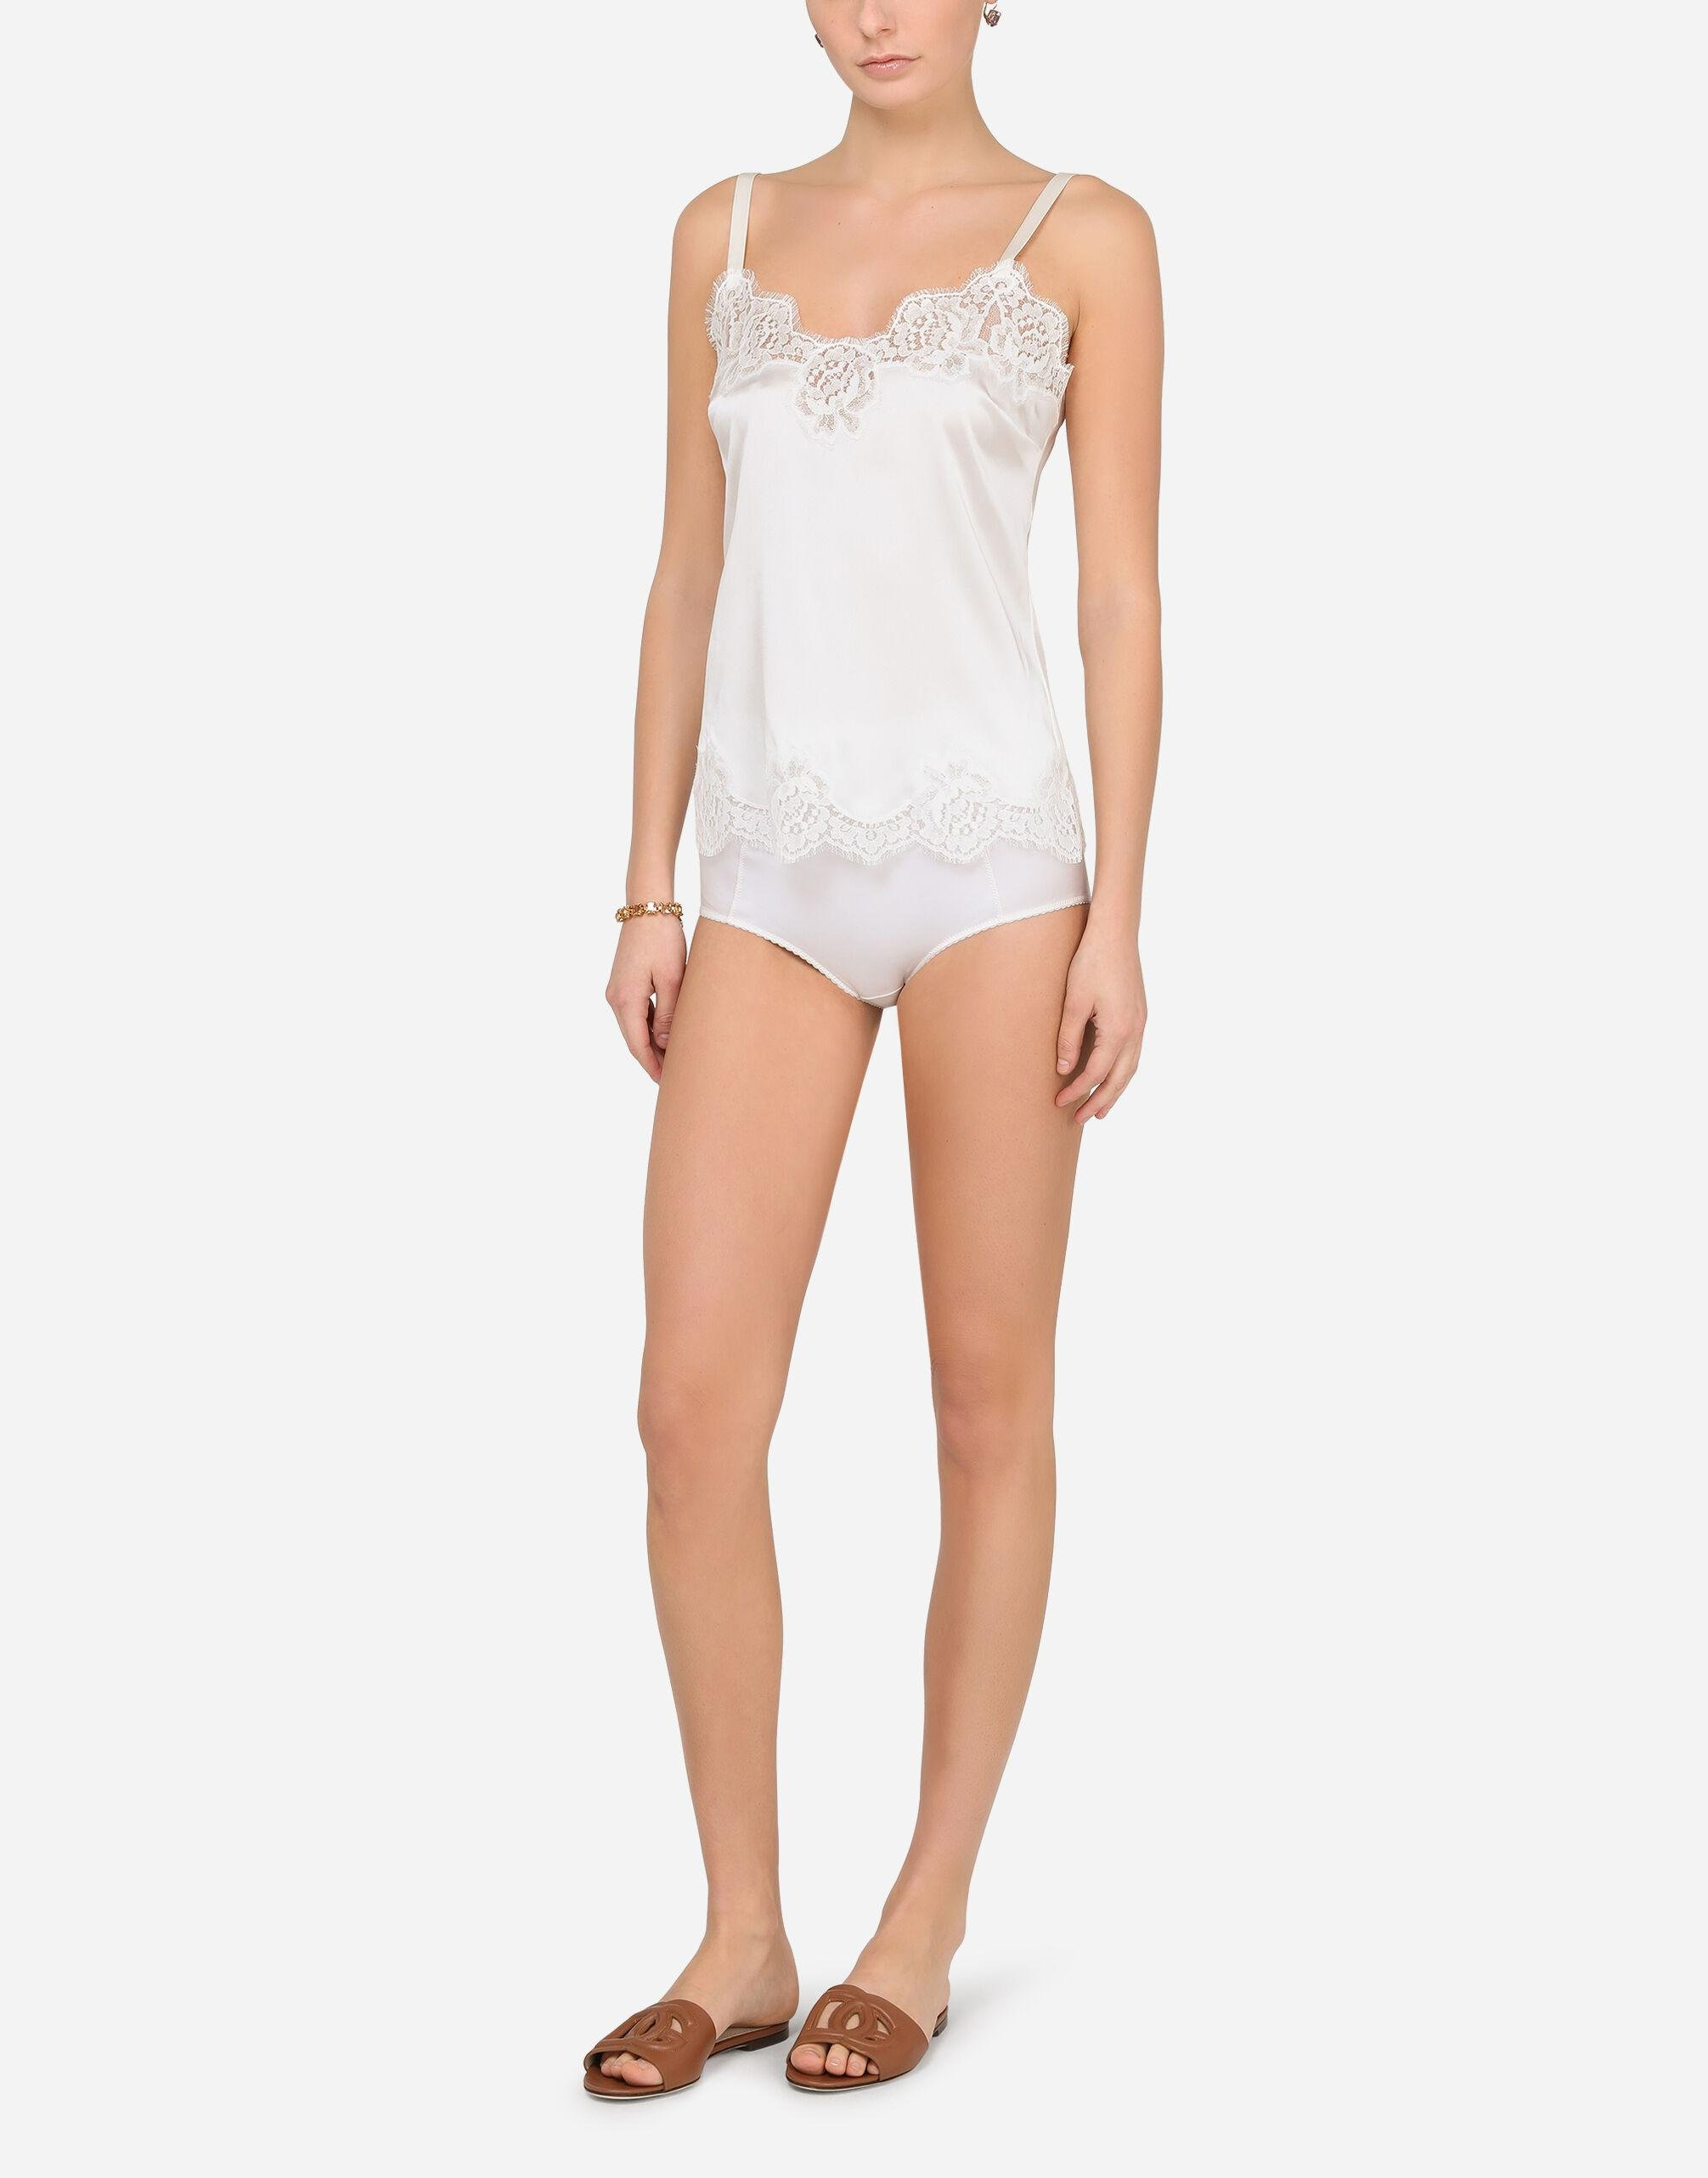 Satin lingerie-style top with lace detailing